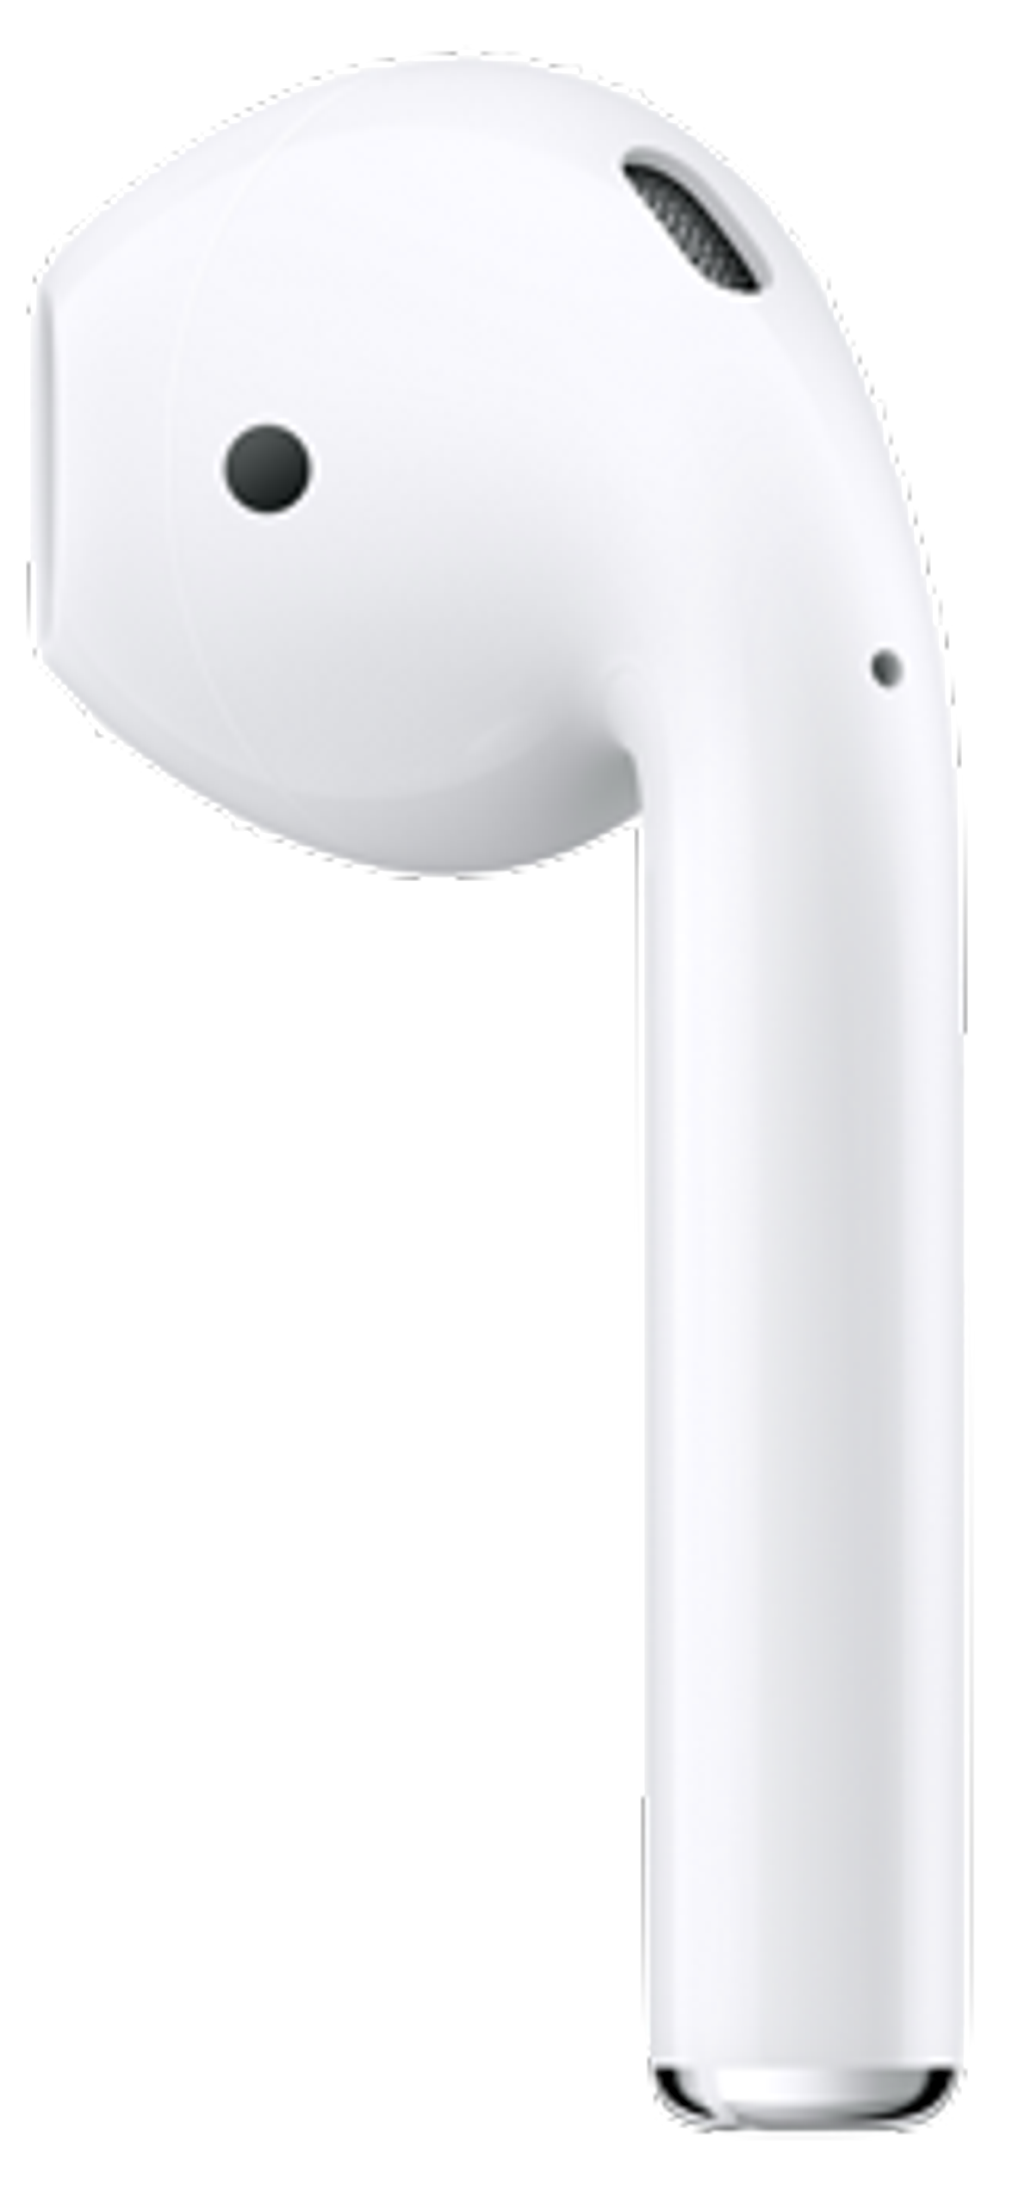 Airpods clipart transparent background png. Air pod airpod apple